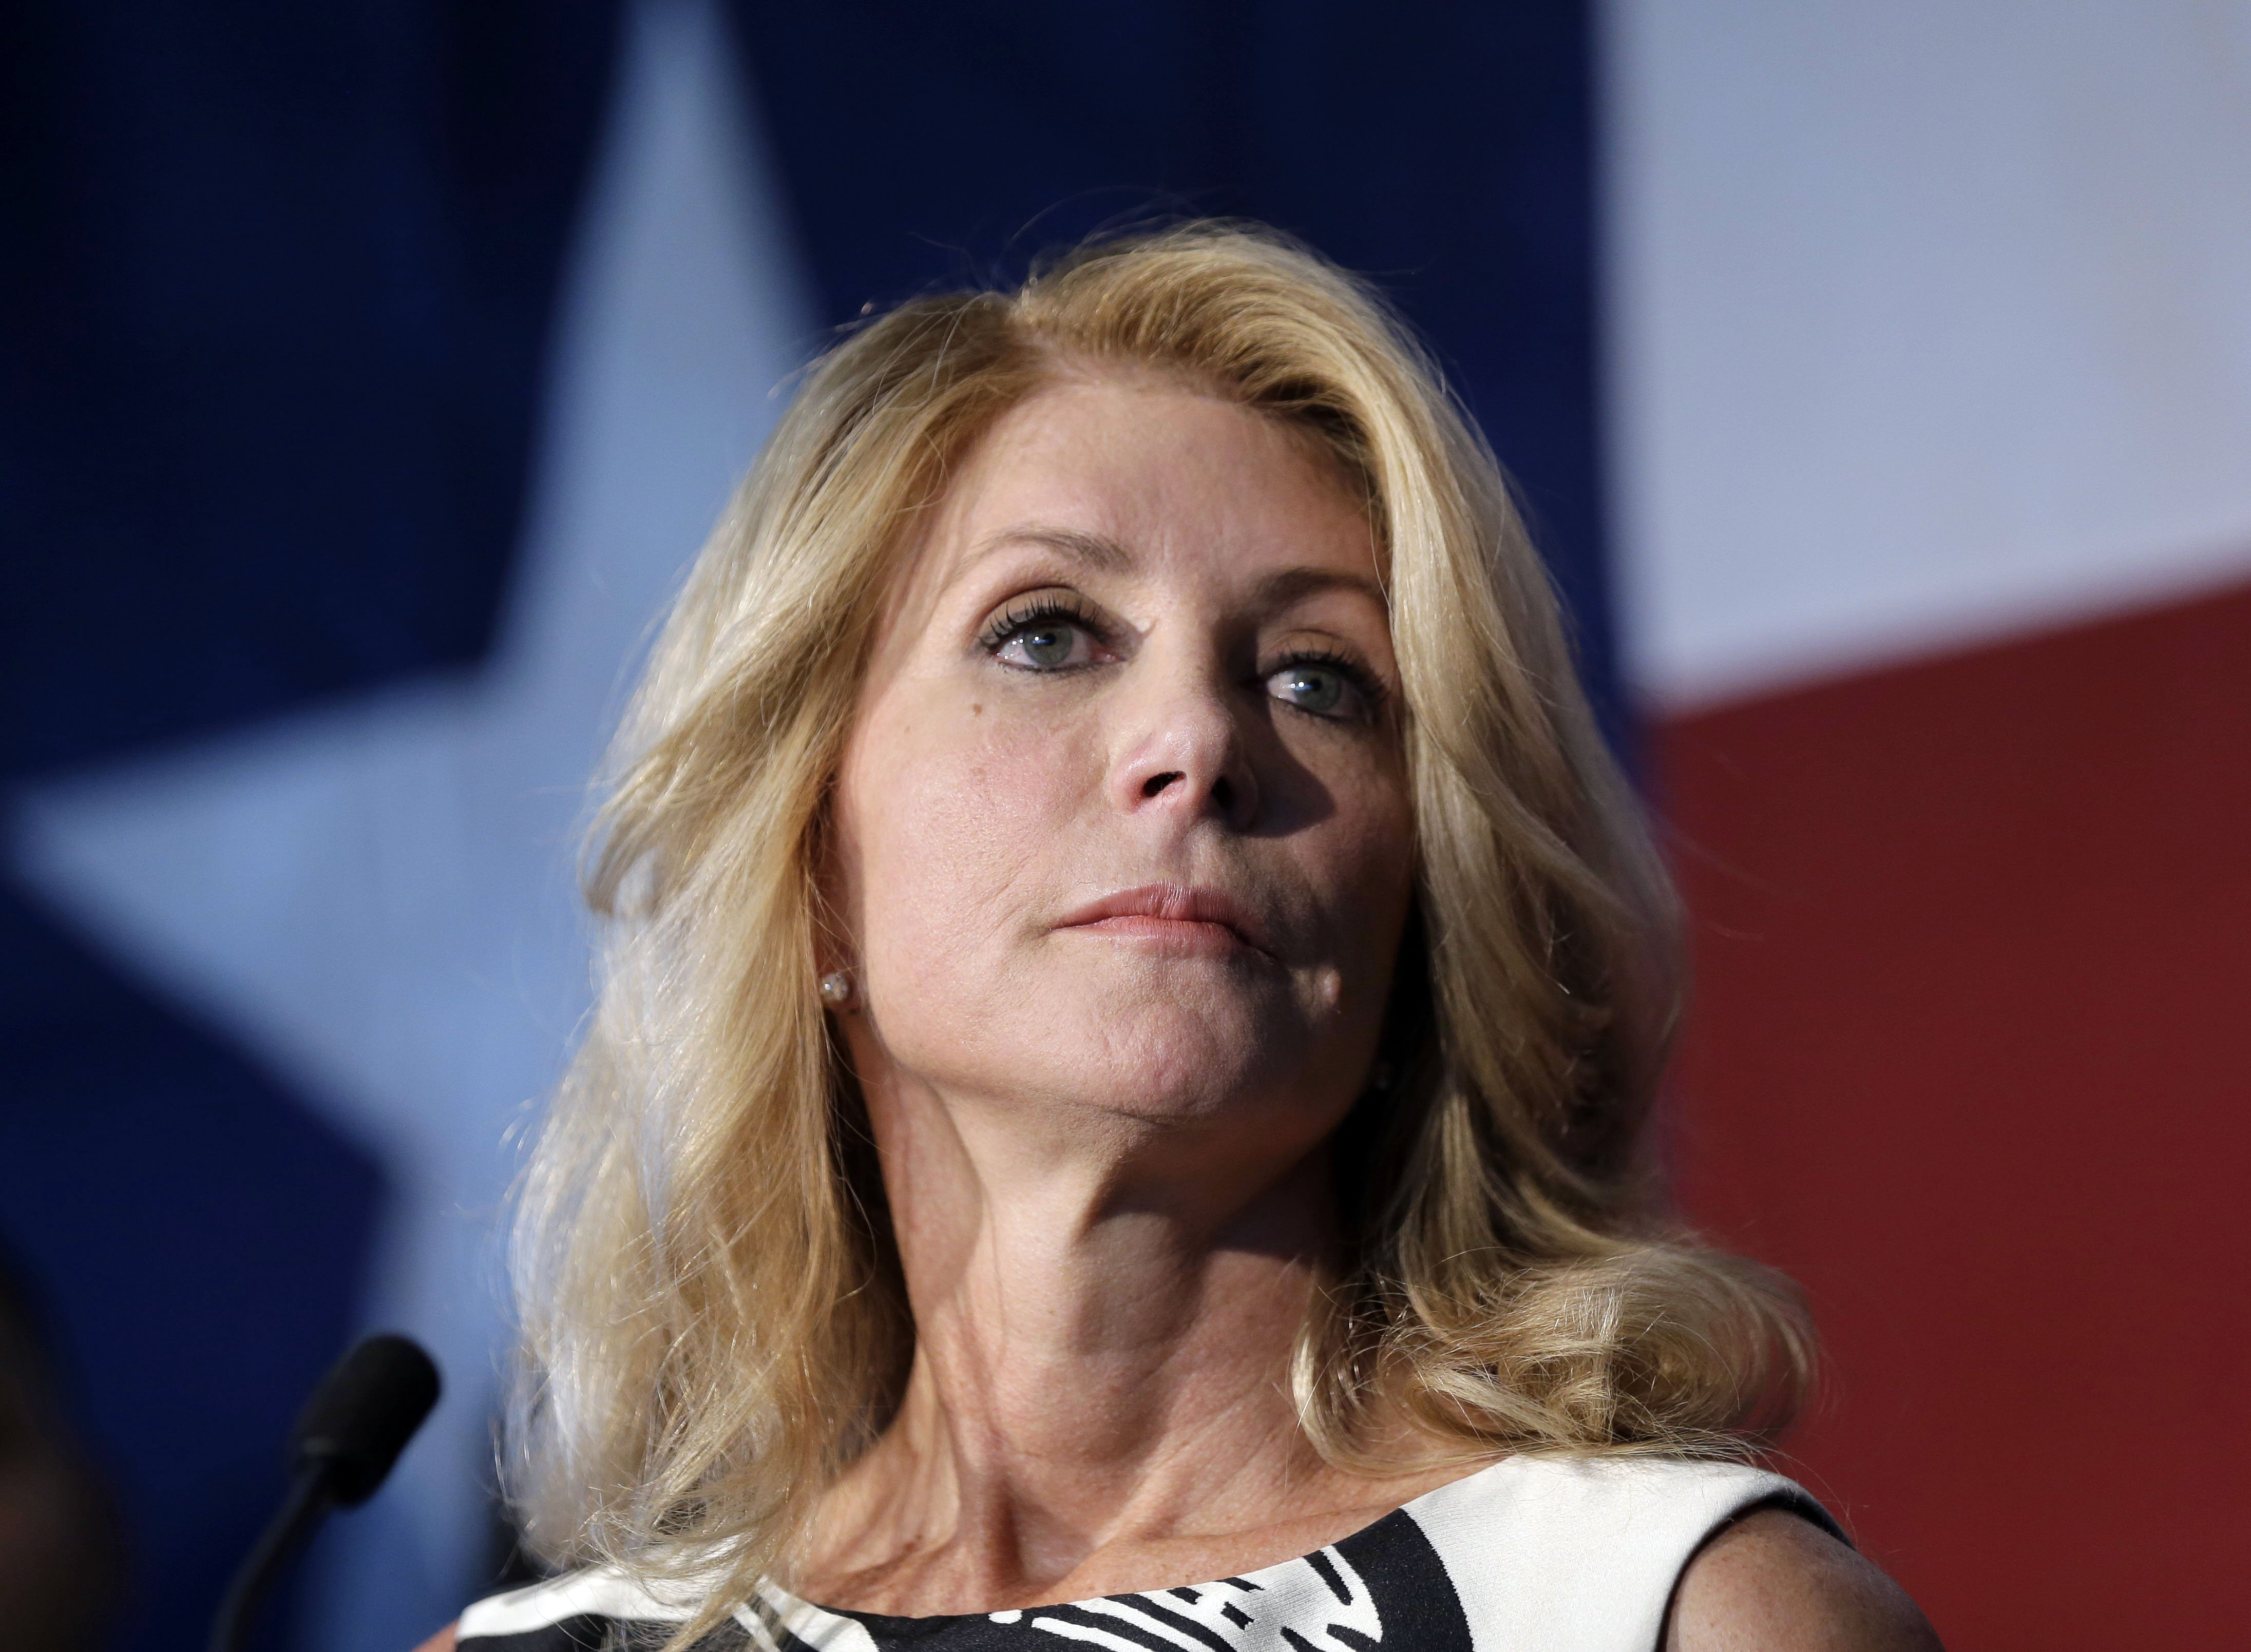 Texas Democratic gubernatorial candidate Wendy Davis presents her new education policy during a stop at Palo Alto College in San Antonio on Aug. 26, 2014